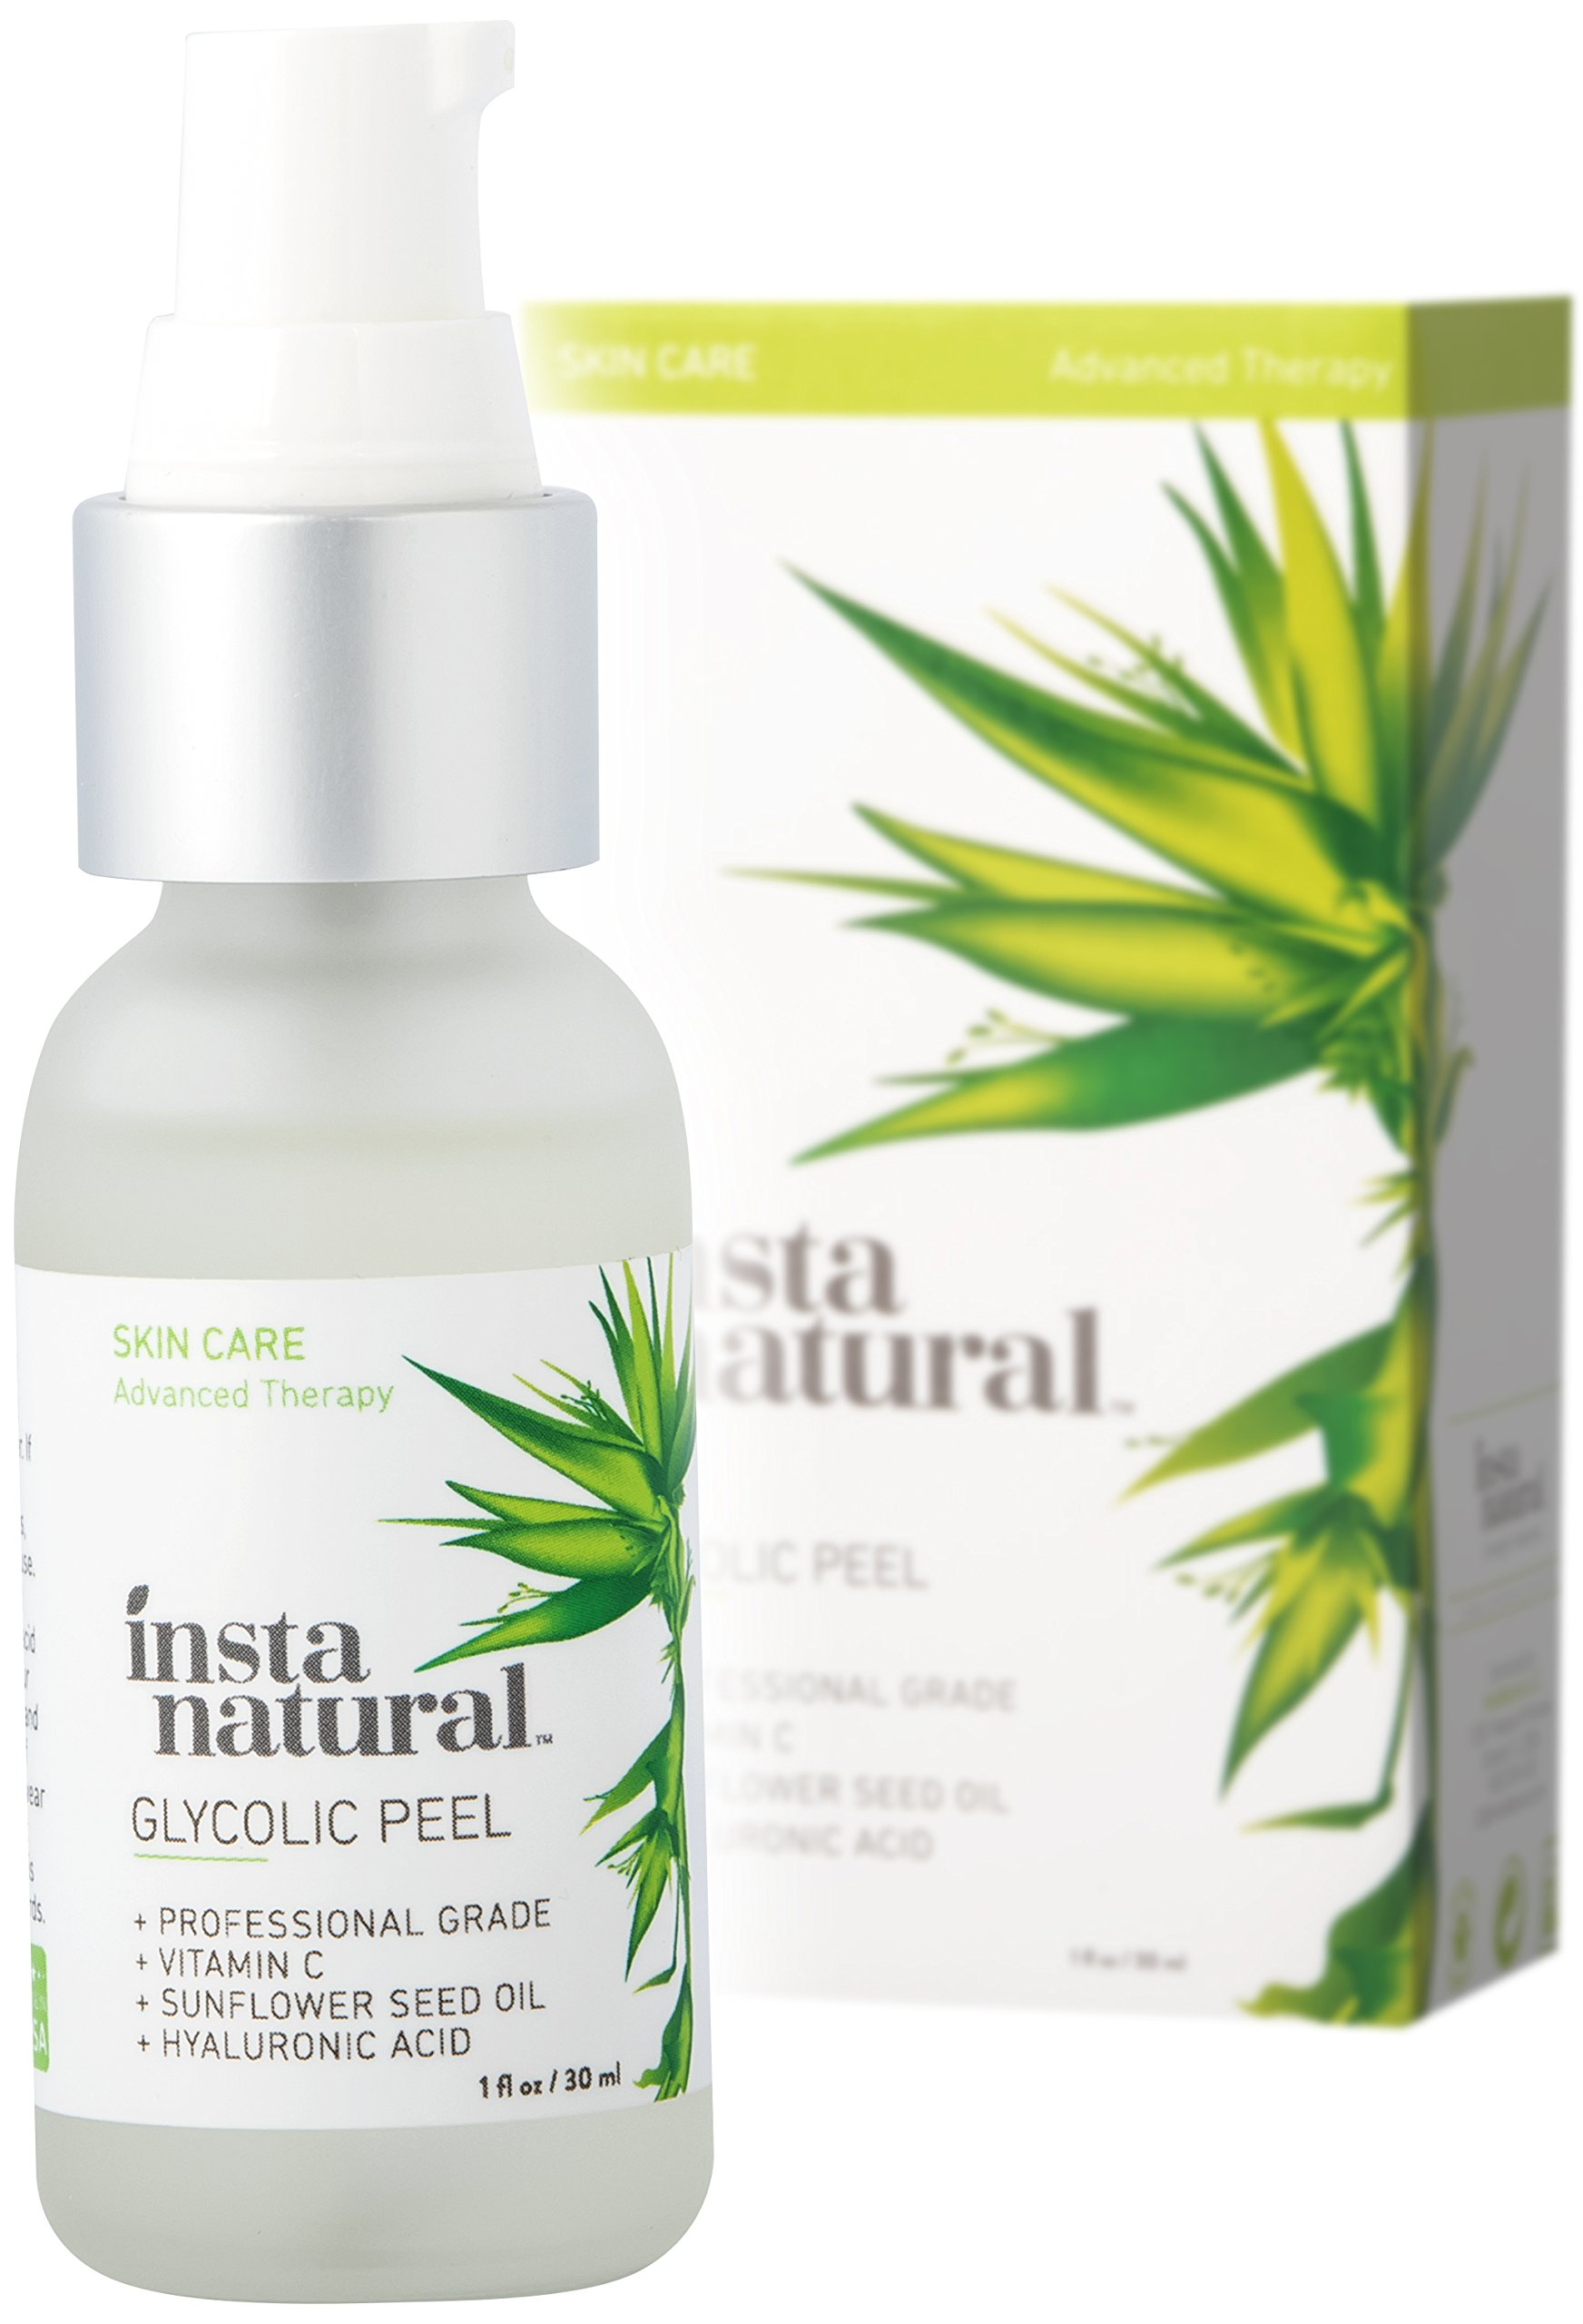 Glycolic Acid Peel 30% – With Vitamin C, Hyaluronic Acid – Best Treatment to Exfoliate Deep, Minimize Pores & Reduce Breakouts, Appearance of Aging & Scars – InstaNatural – 1 oz